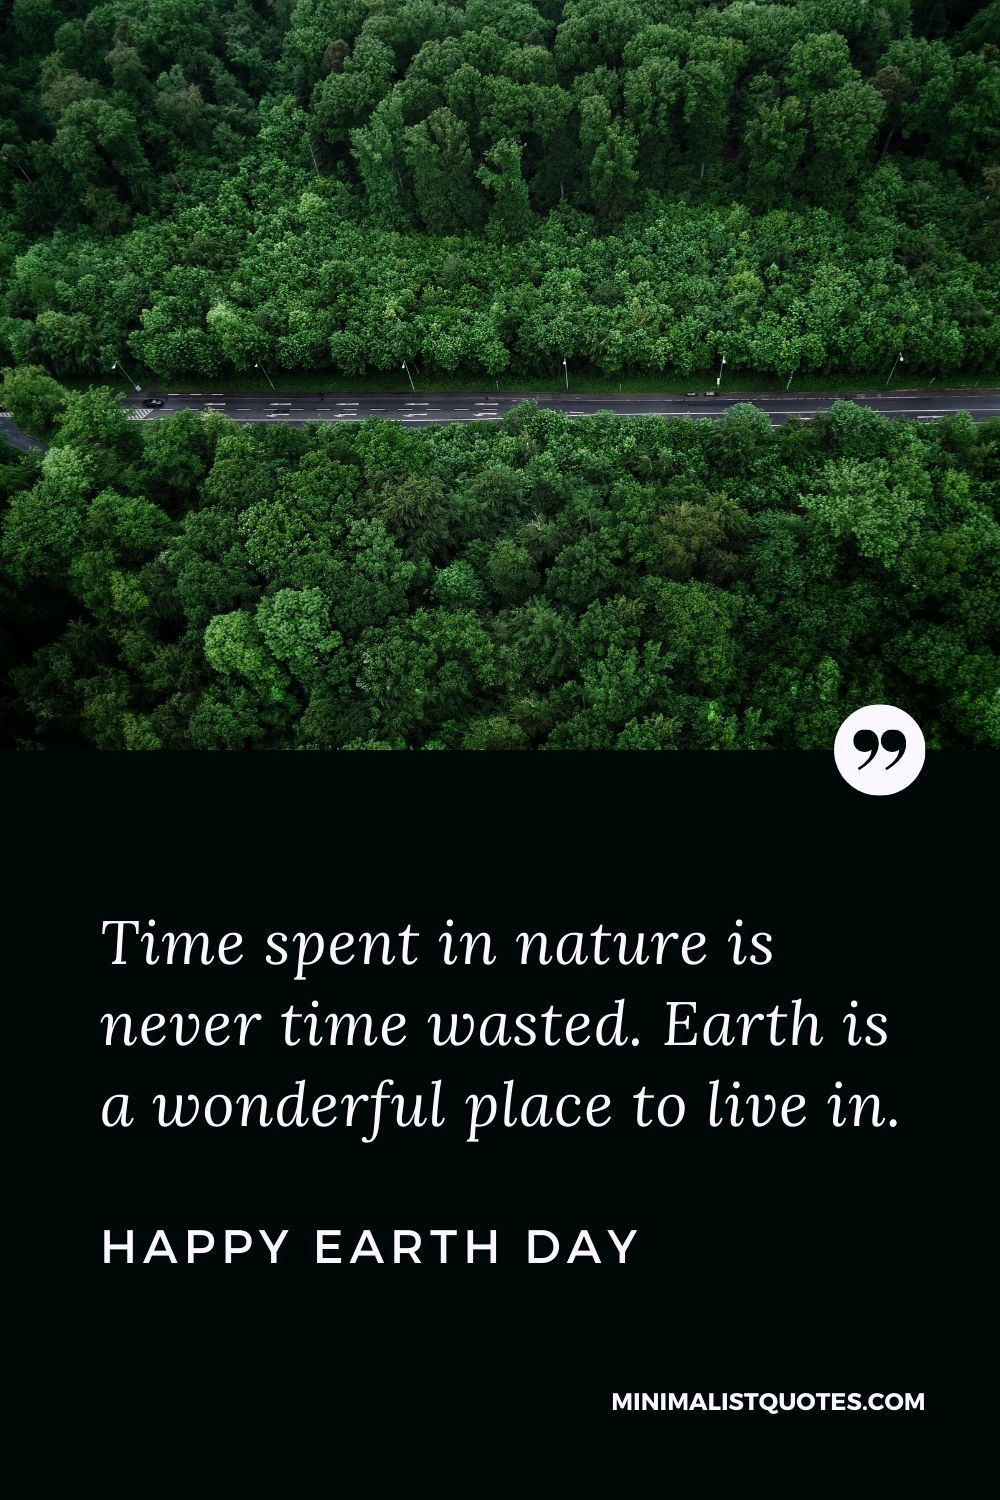 Earth Day wish, quote & message with had image: Time spent in nature is never time wasted. Earth is a wonderful place to live in. Happy Earth Day!